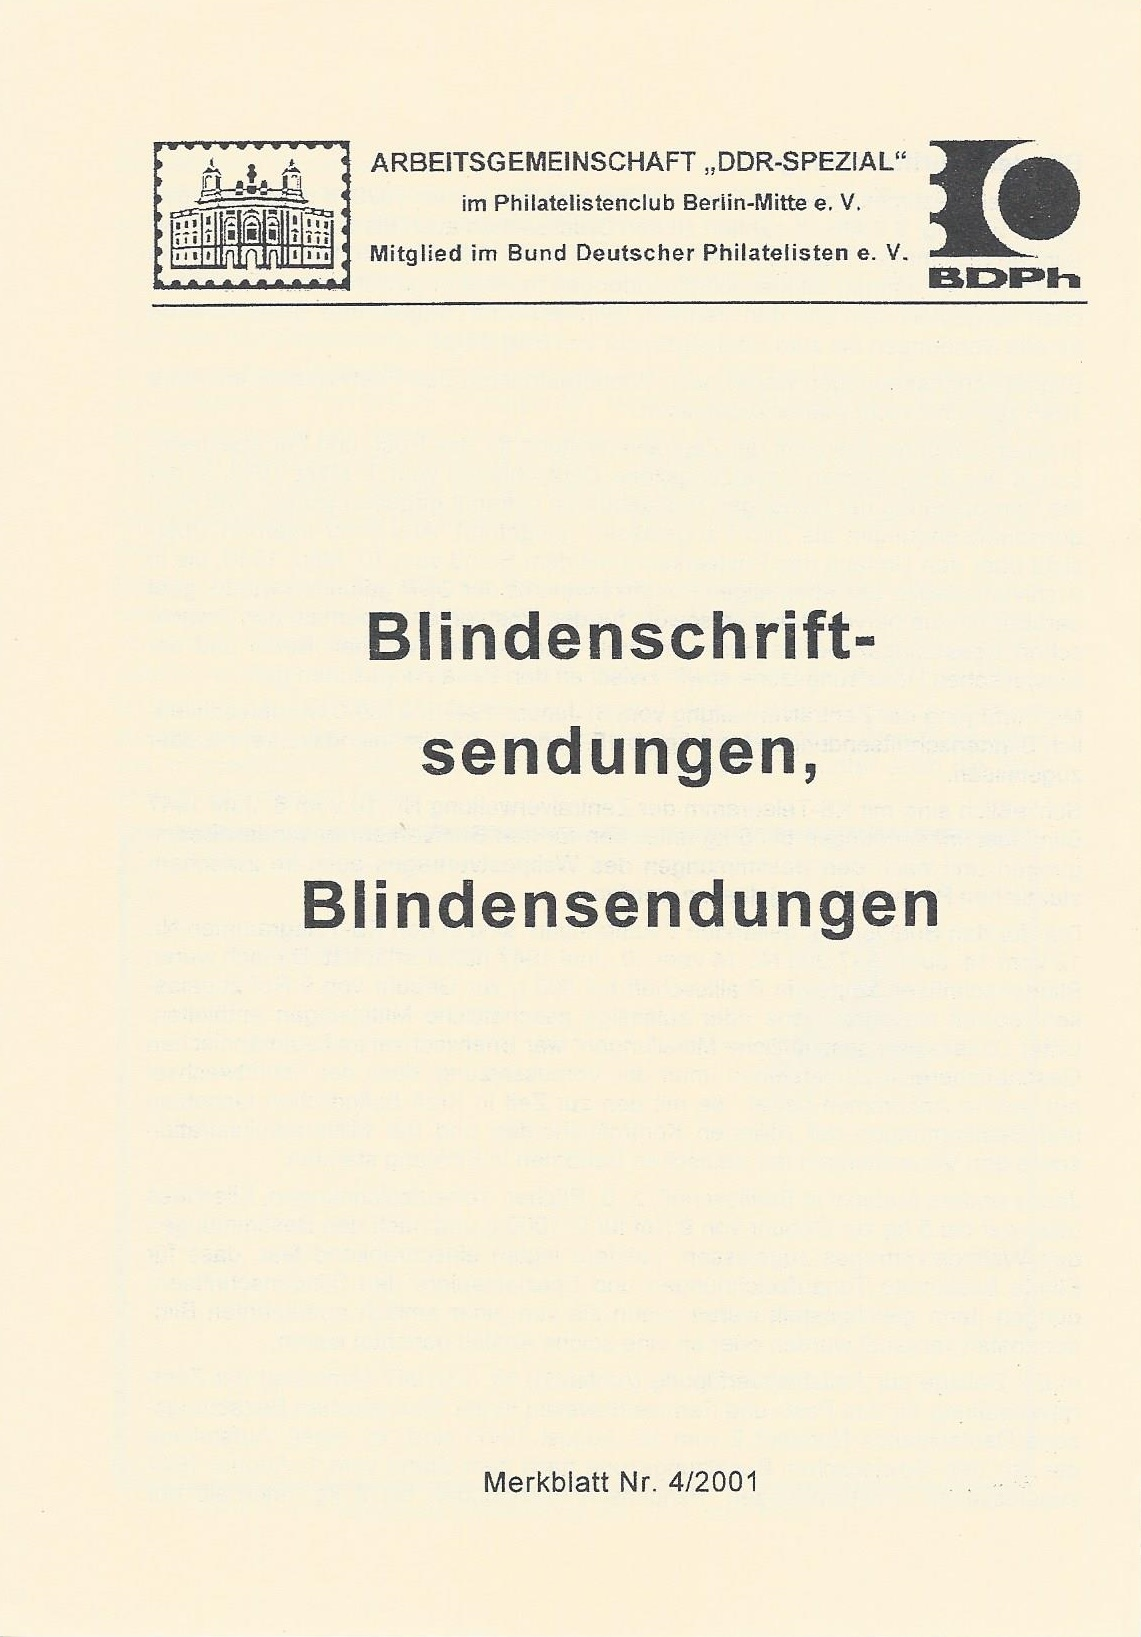 DDR Philatelie Literatur Blindensendung